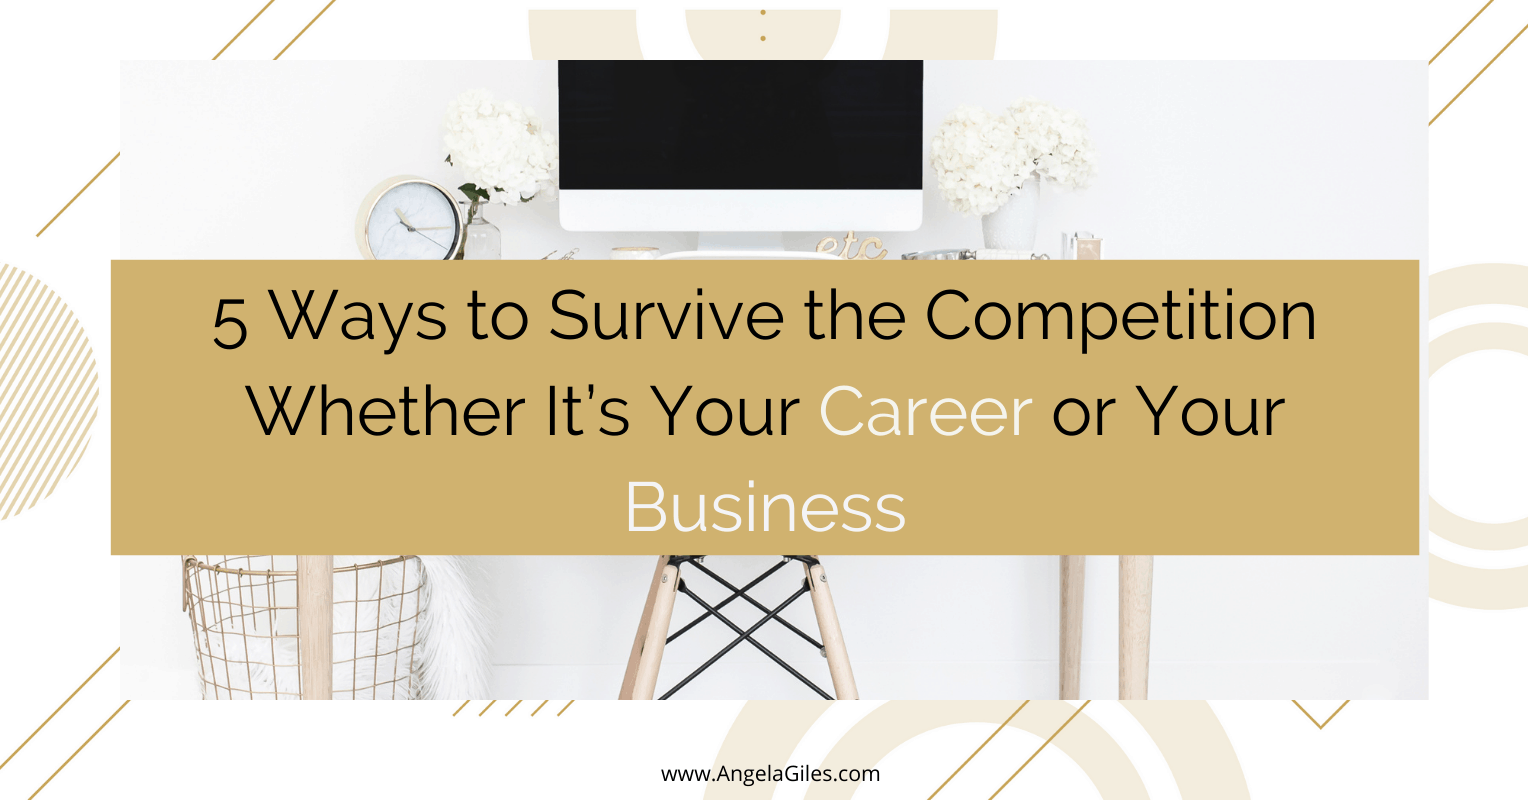 5 Ways to Survive the Competition Whether It's Your Career or Your Business